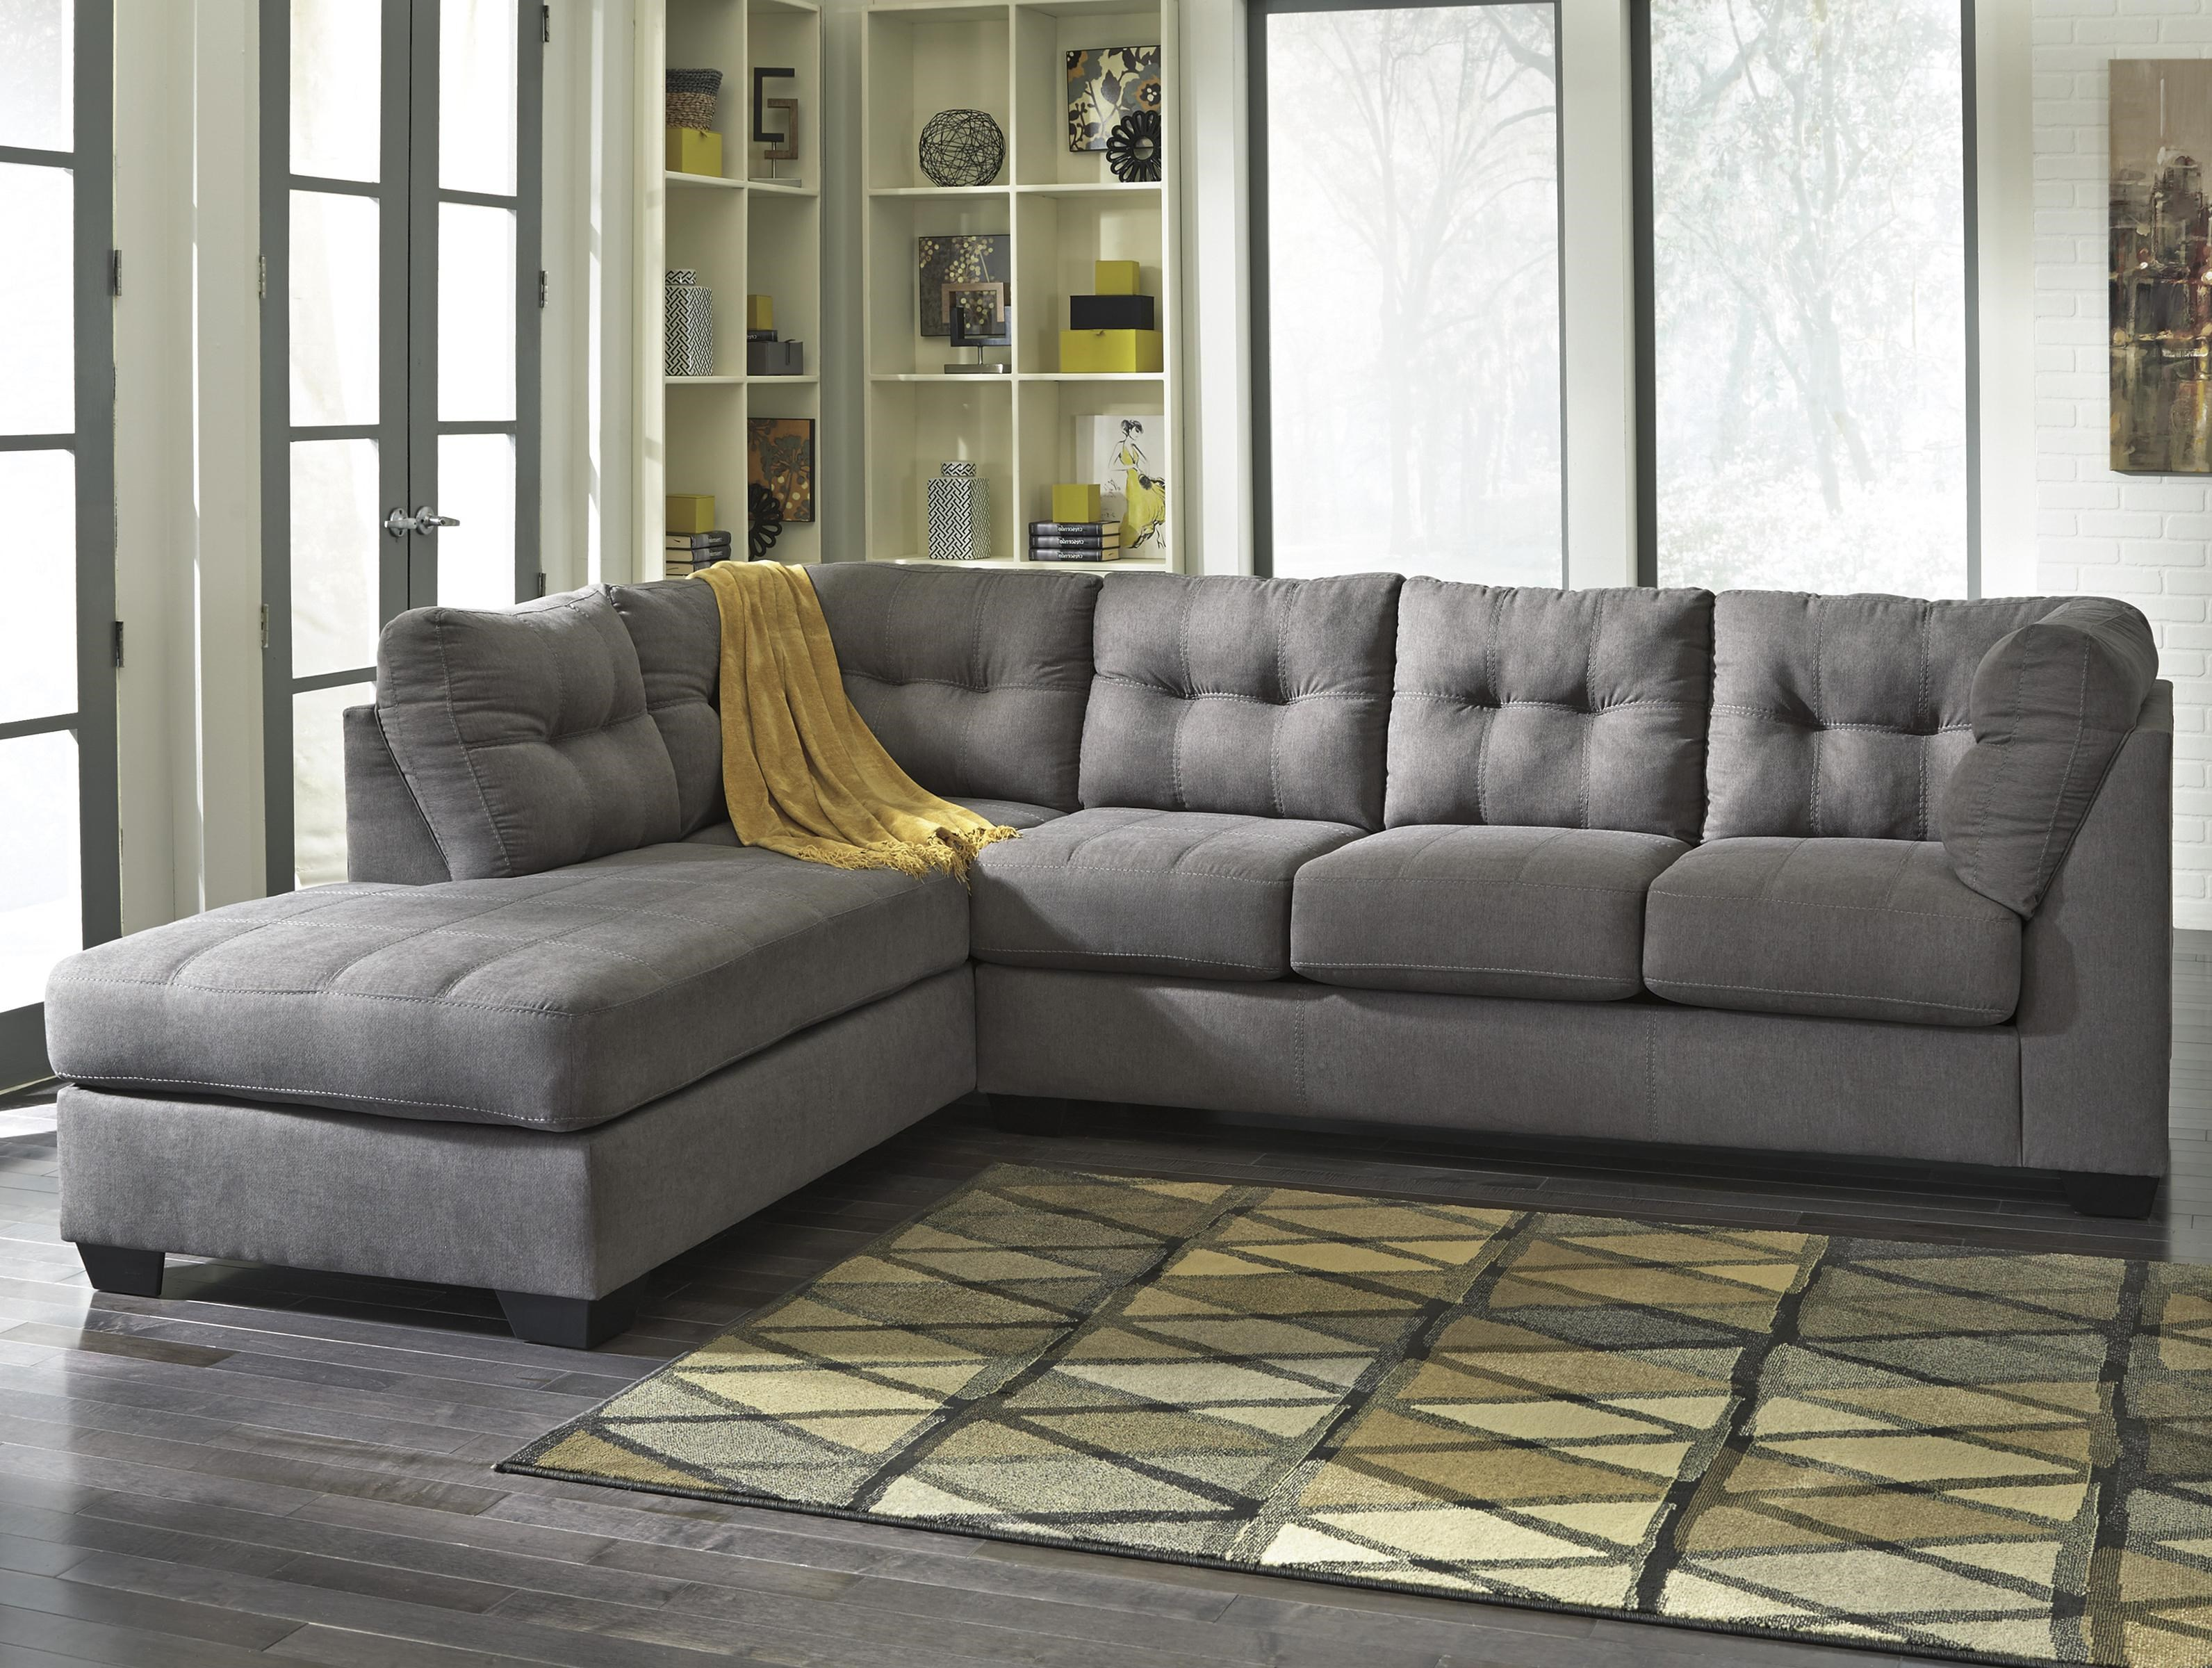 Benchcraft Maier - Charcoal 2-Piece Sectional w/ Sleeper Sofa u0026 Left Chaise  sc 1 st  Wayside Furniture : 2 piece sectional sofa with chaise - Sectionals, Sofas & Couches